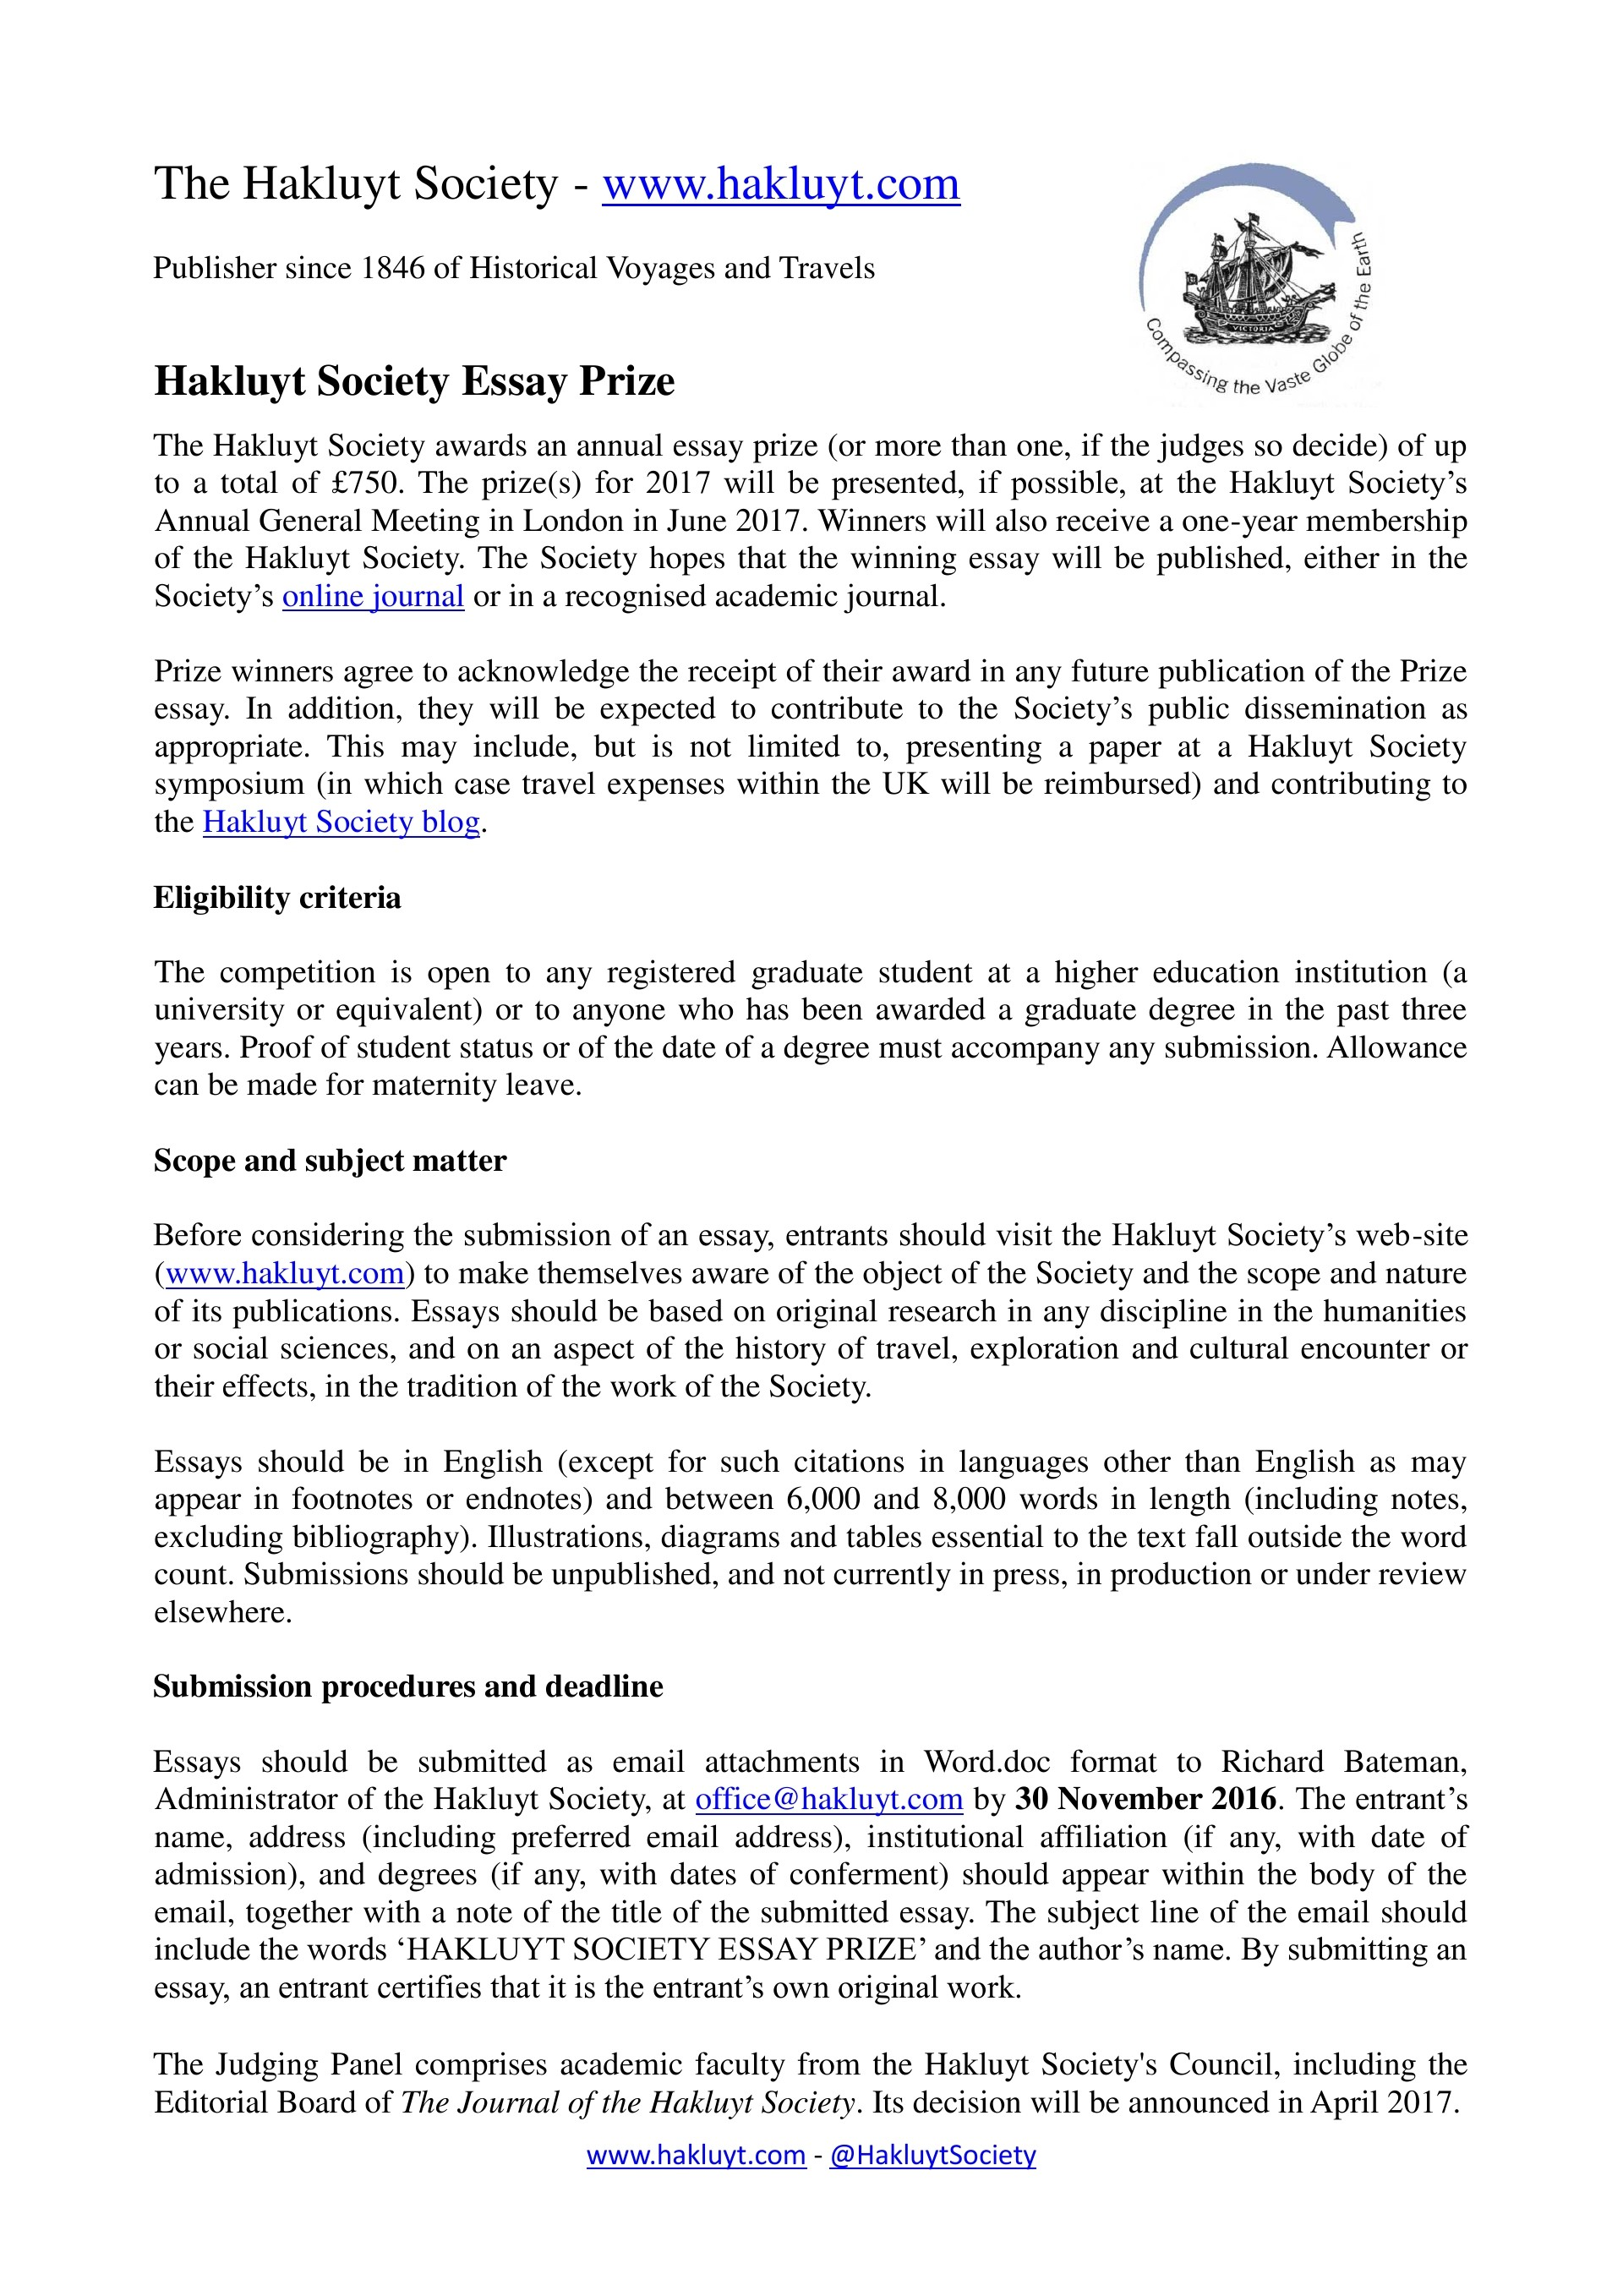 017 Travel Essay Hakluyt Society Prize The Example Text Journal Sample Tagalog Photo Examples Experience Pdf Writing Unique Definition Submissions 1920